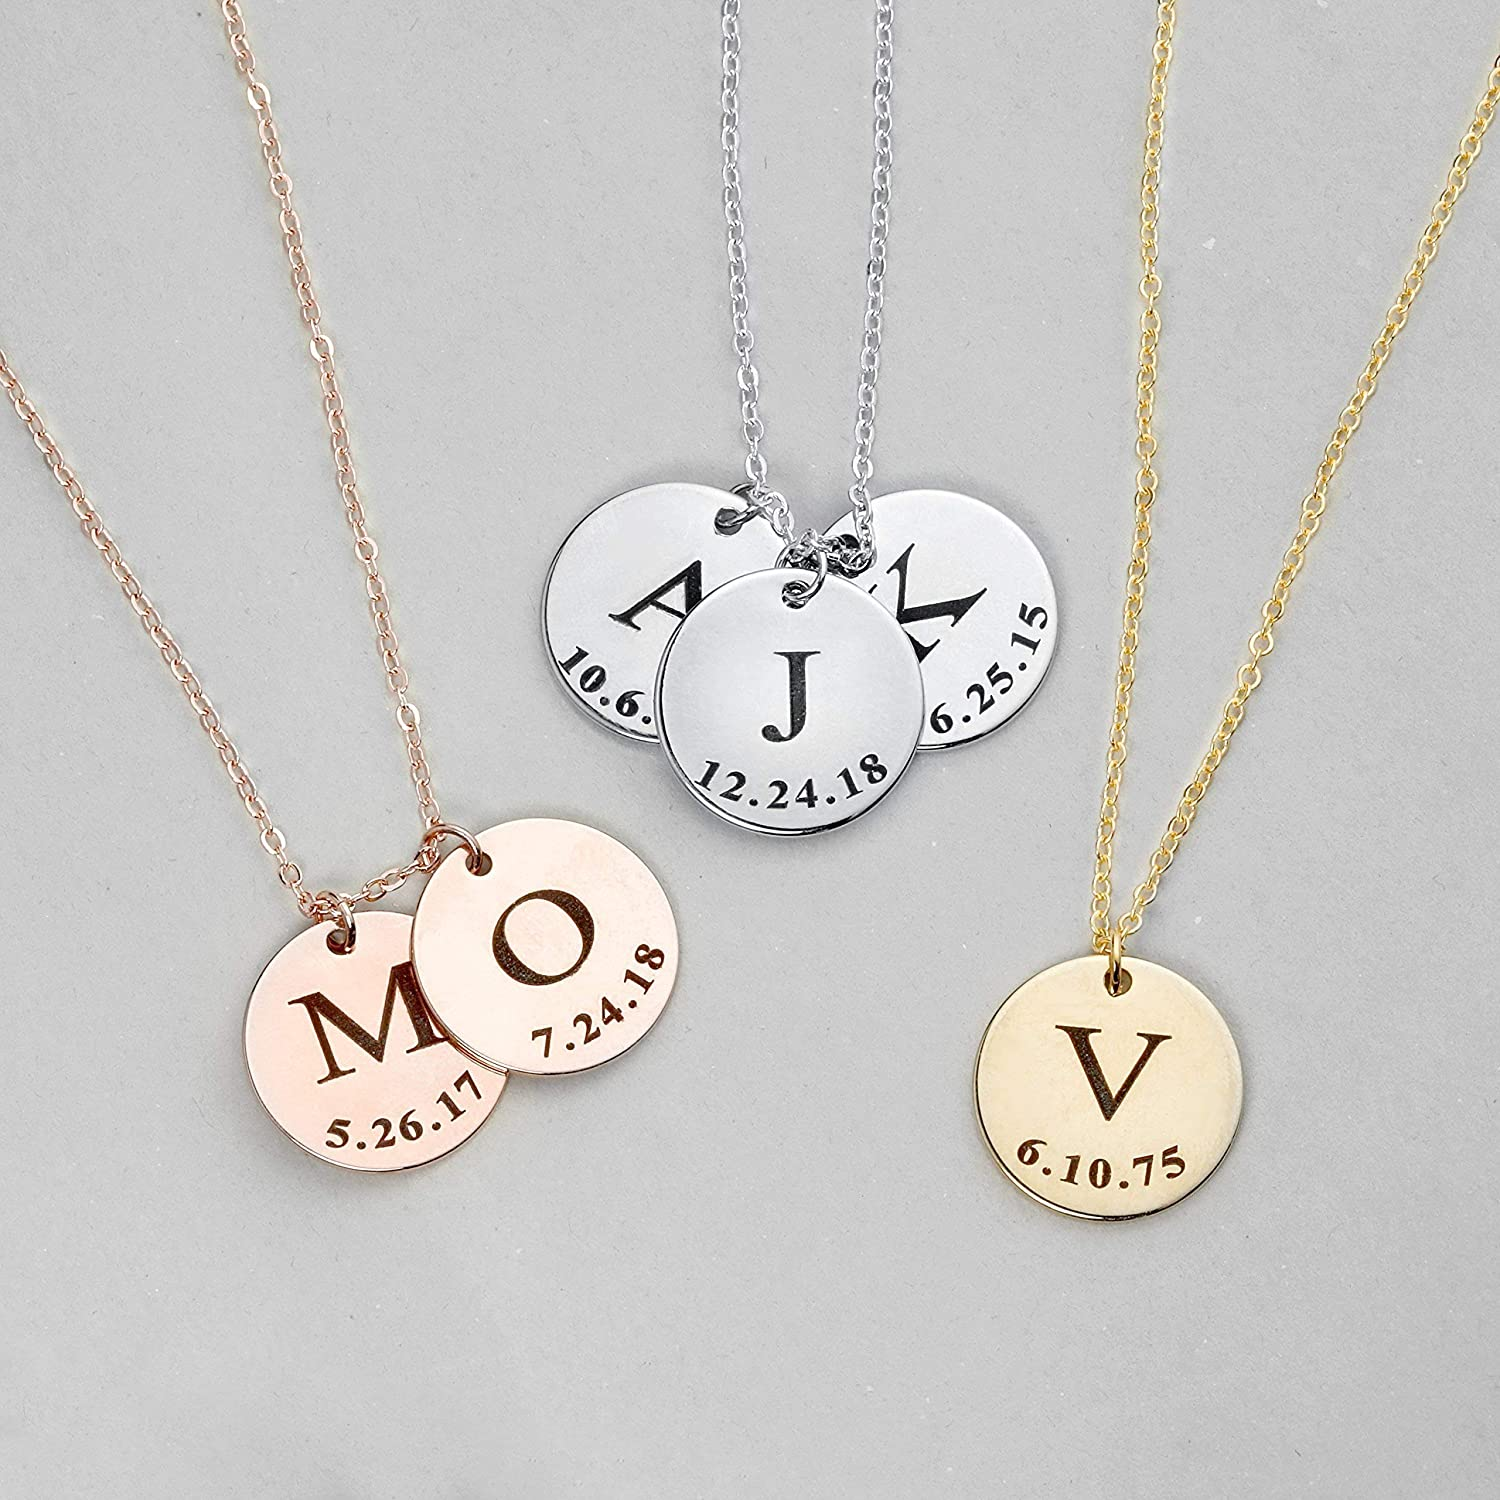 SAME DAY SHIPPING Before 12pm Delicate Initial Disc Necklace Coin Graduation Gift Mothers Day Gift Personalized Initial Jewelry for Women LCN-ID-L